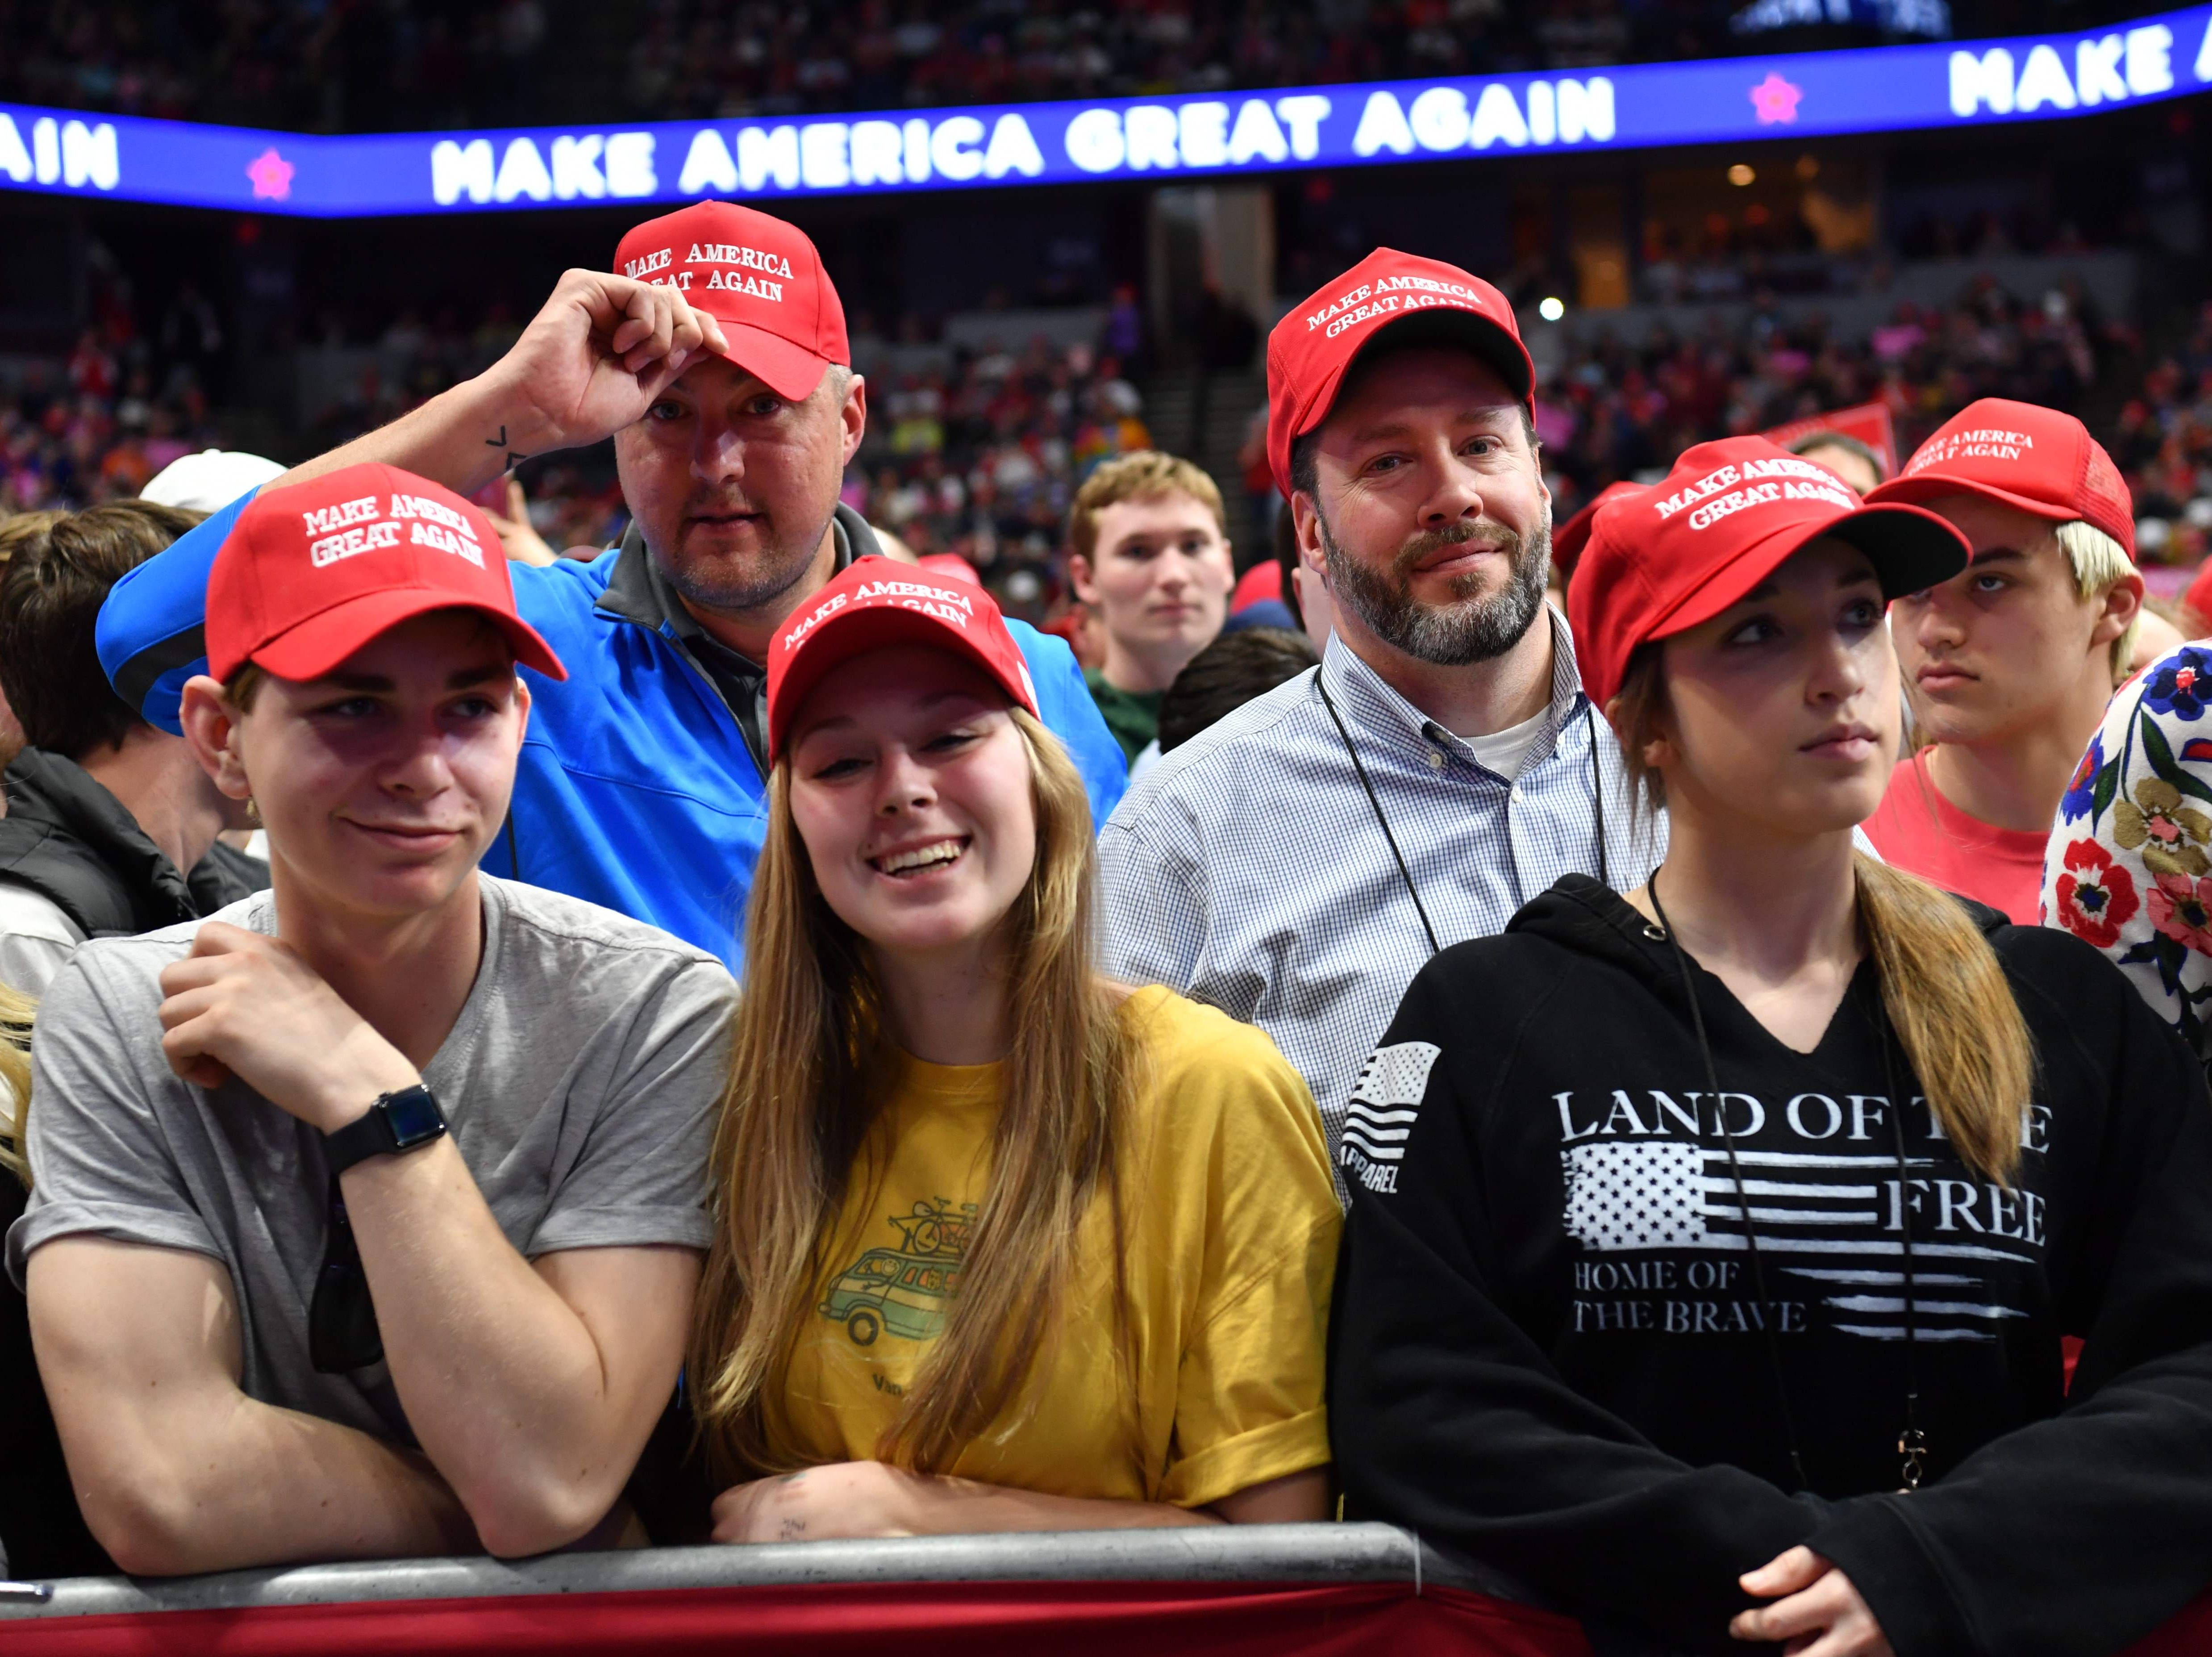 Supporters of US President Donald Trump attend a campaign rally in Grand Rapids, Michigan on March 28, 2019.